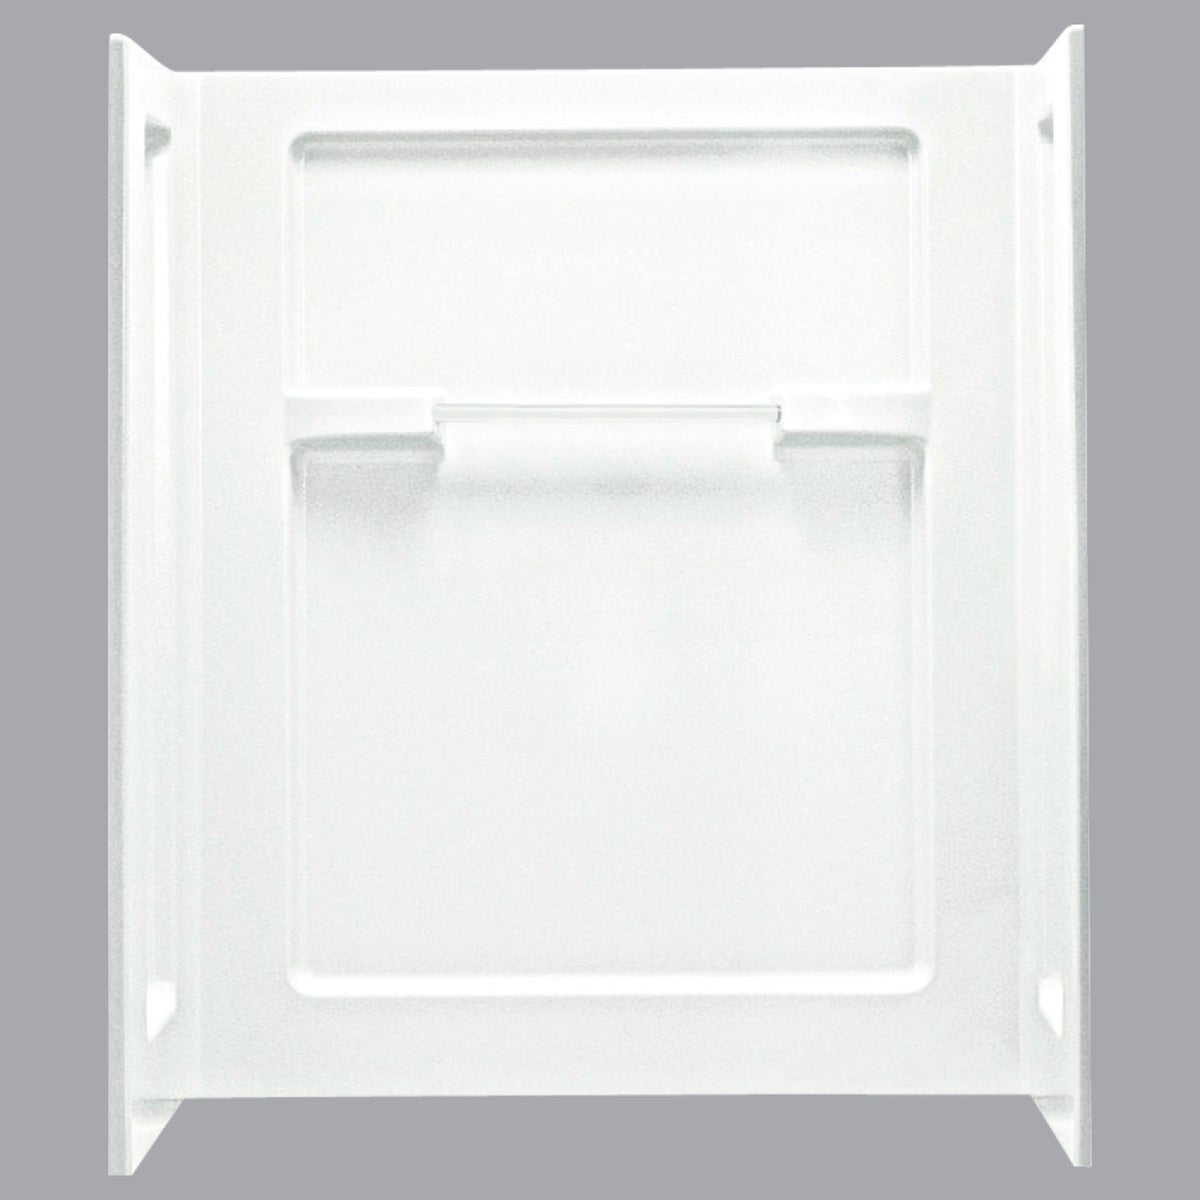 "48"" WHITE SHOWER WALLSET - 62034100-0 by Sterling Pbg/vikrell"